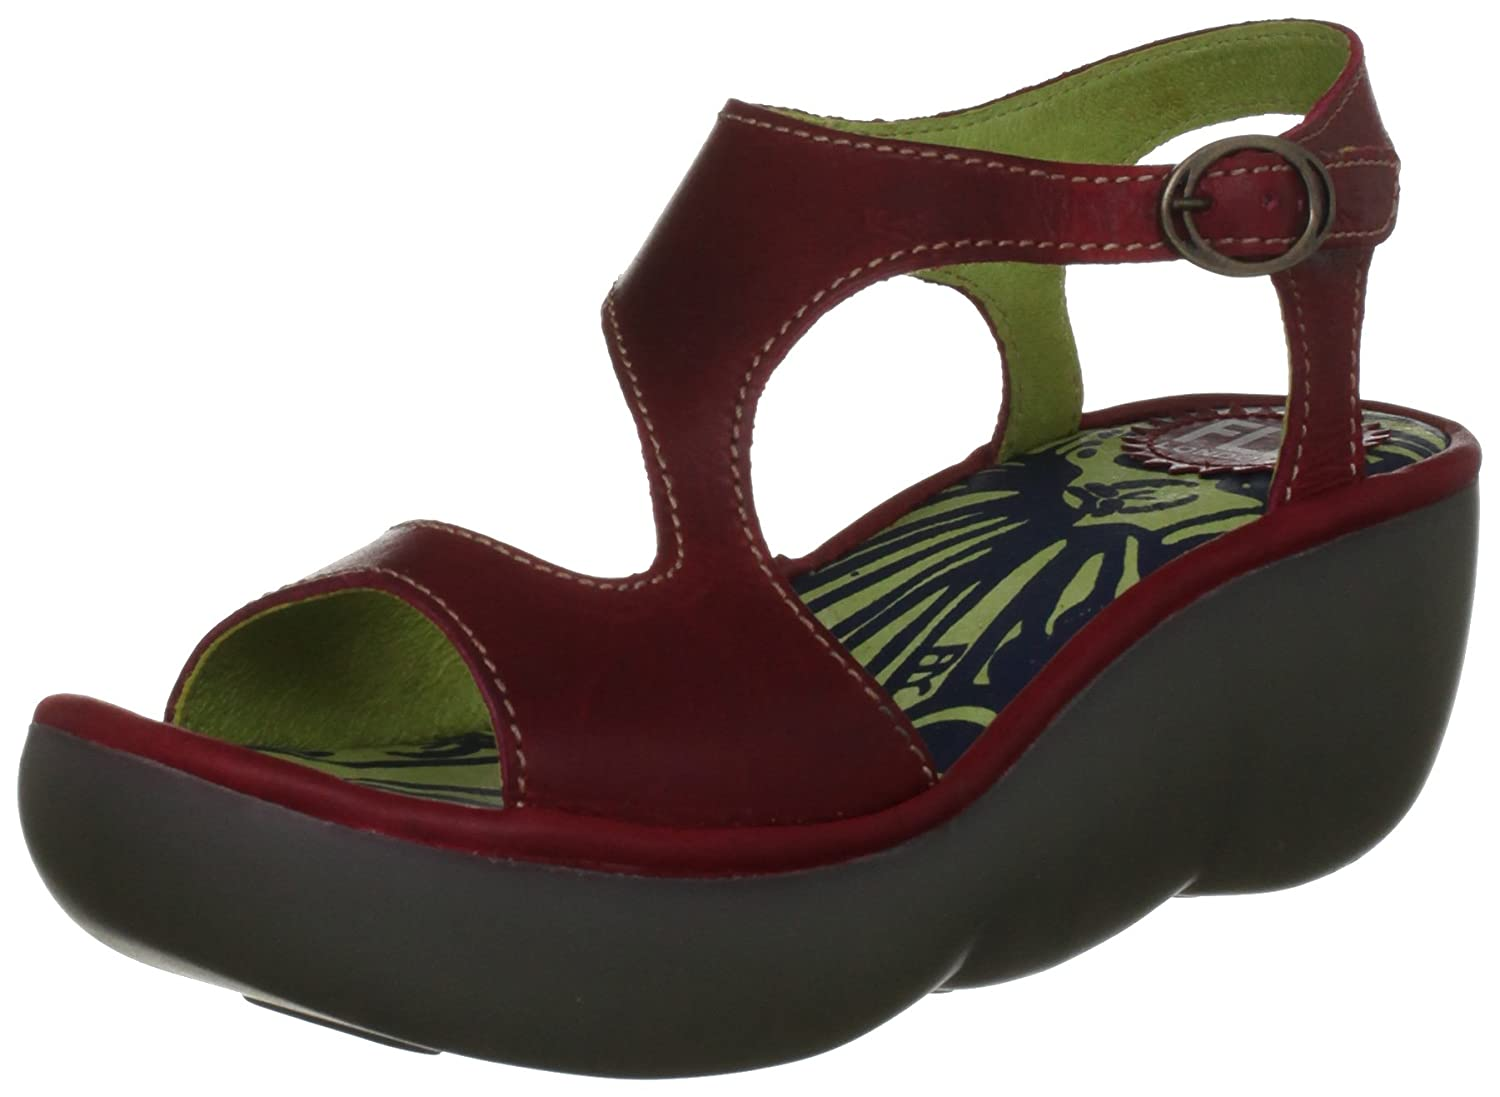 Fly London Bianca, Sandales Bianca, compensées femme Rouge London Rouge (Red) 97e76c4 - fast-weightloss-diet.space